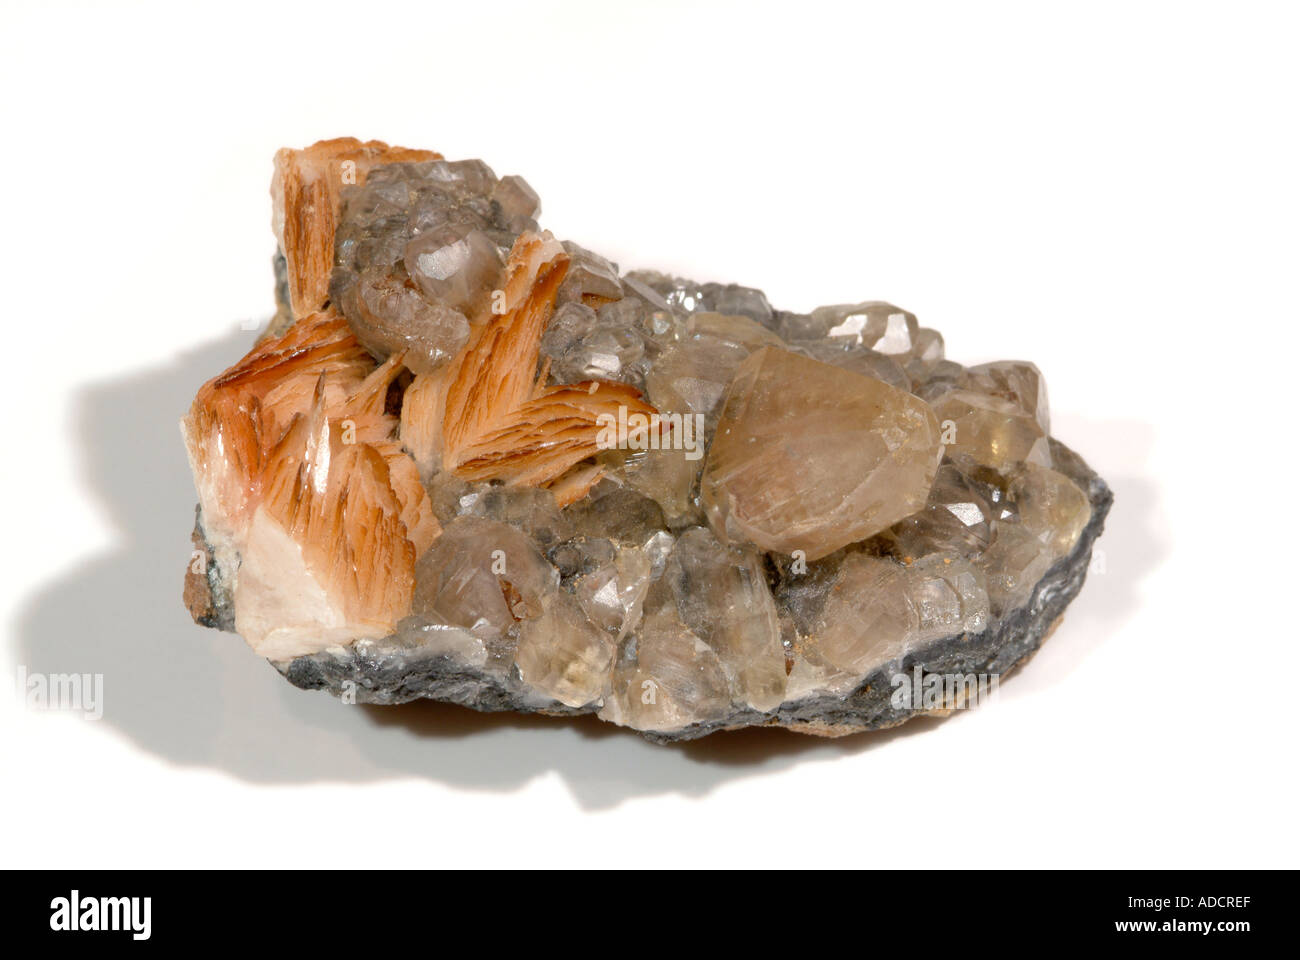 Mineral Cerussite, Cerussite crystals with red edge tinted baryte crystals, Mibladen mine, near Midelt, Morocco - Stock Image